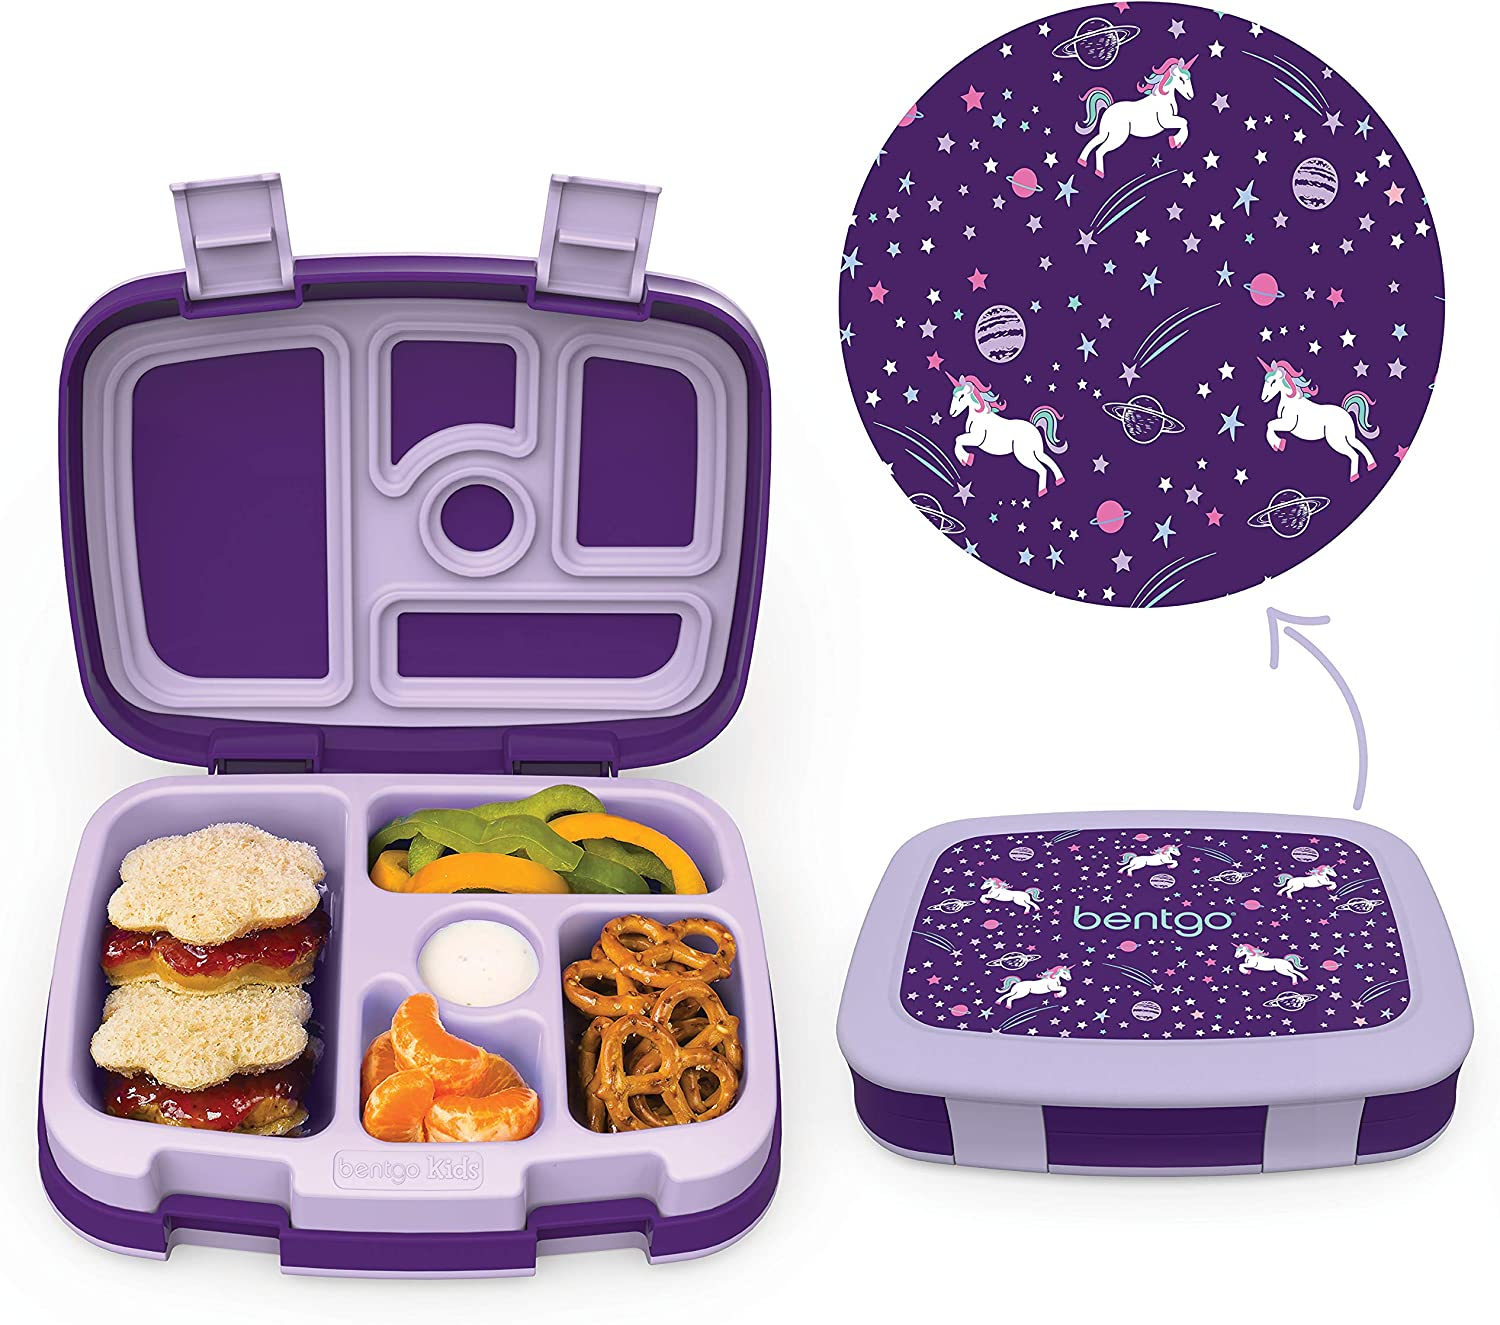 Top 10 Best Kids Lunch Boxes (2020 Reviews & Buying Guide) 6